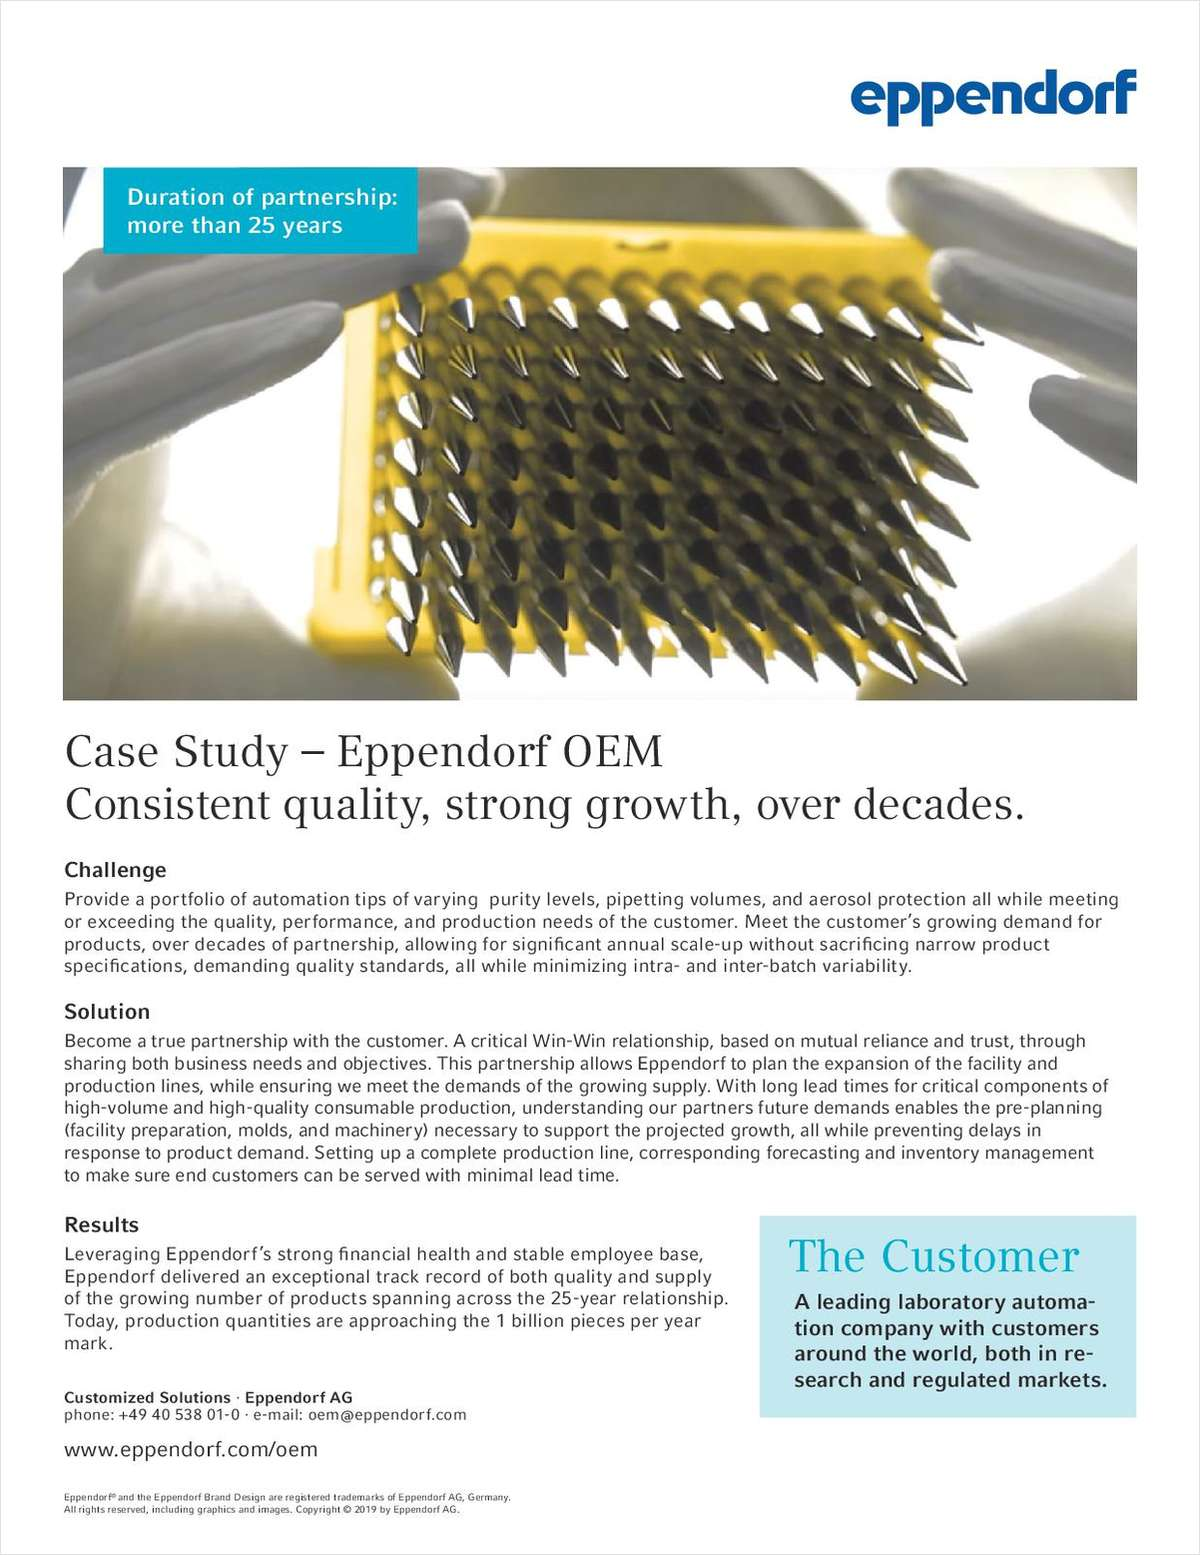 Case Study: Eppendorf OEM for Lab Automation